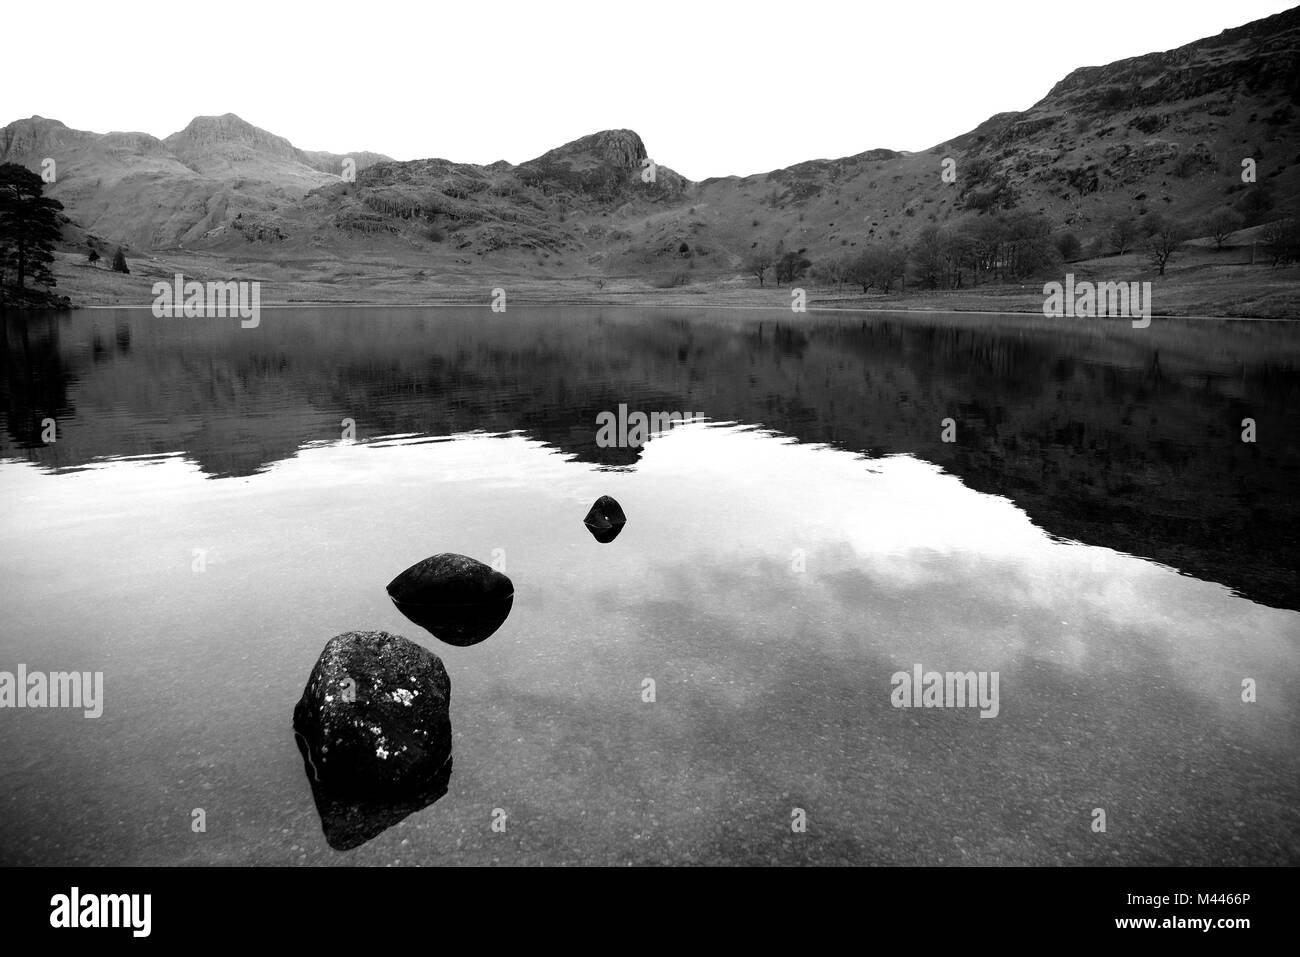 Lake district UK Photo Stock